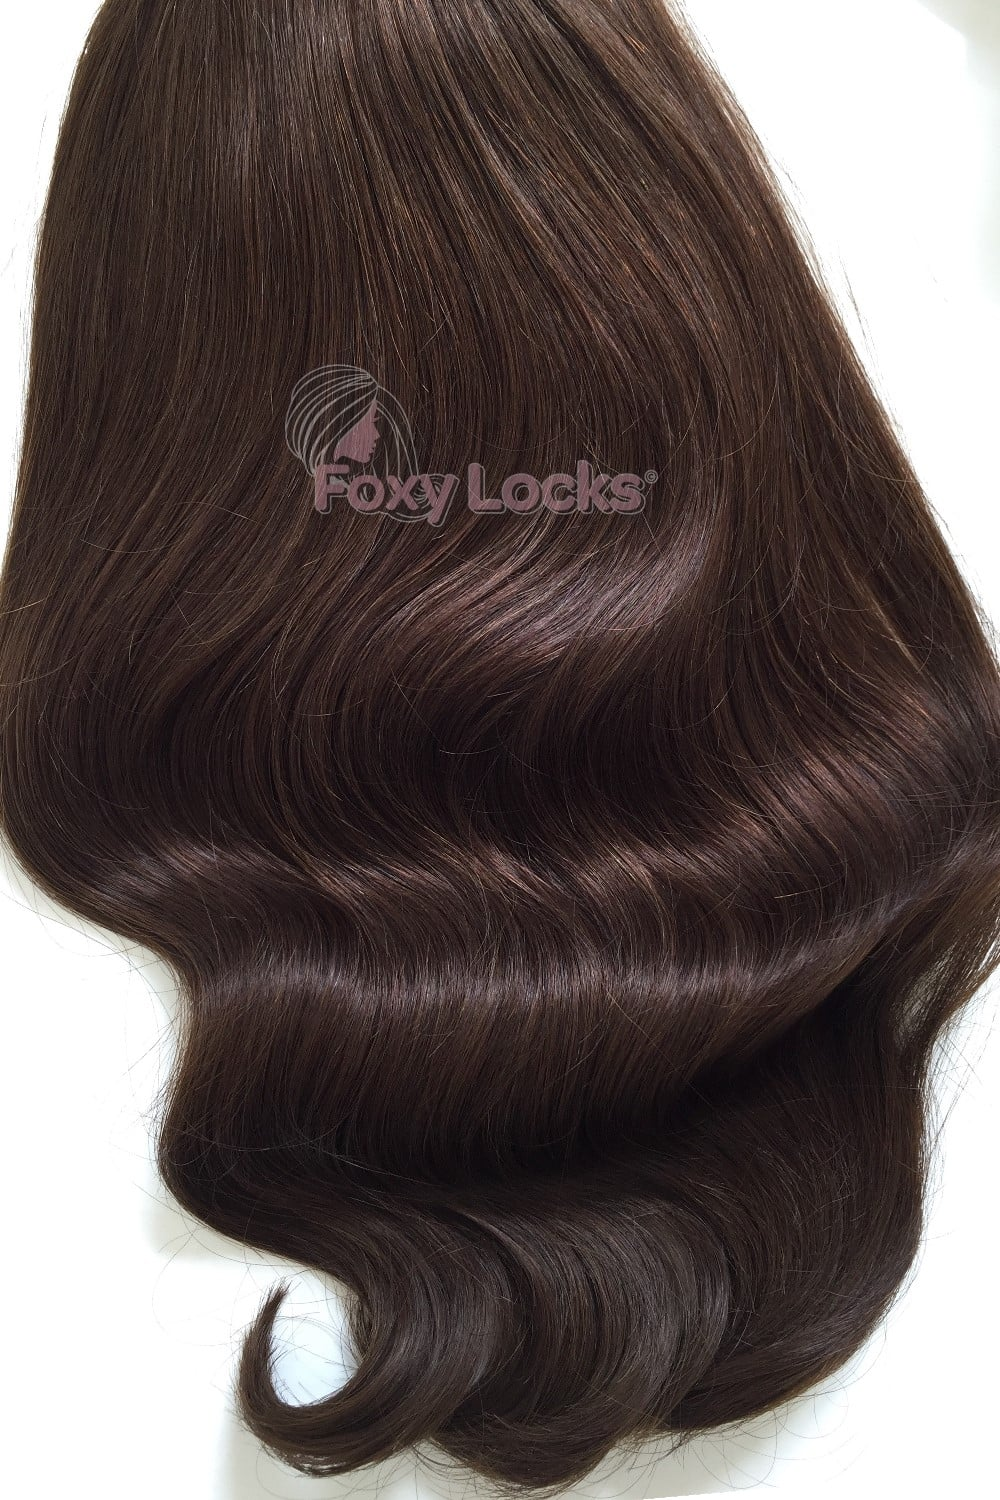 Luxurious 24 clip in human hair extensions 280g cocoa luxurious 24 clip in human hair extensions 280g pmusecretfo Image collections